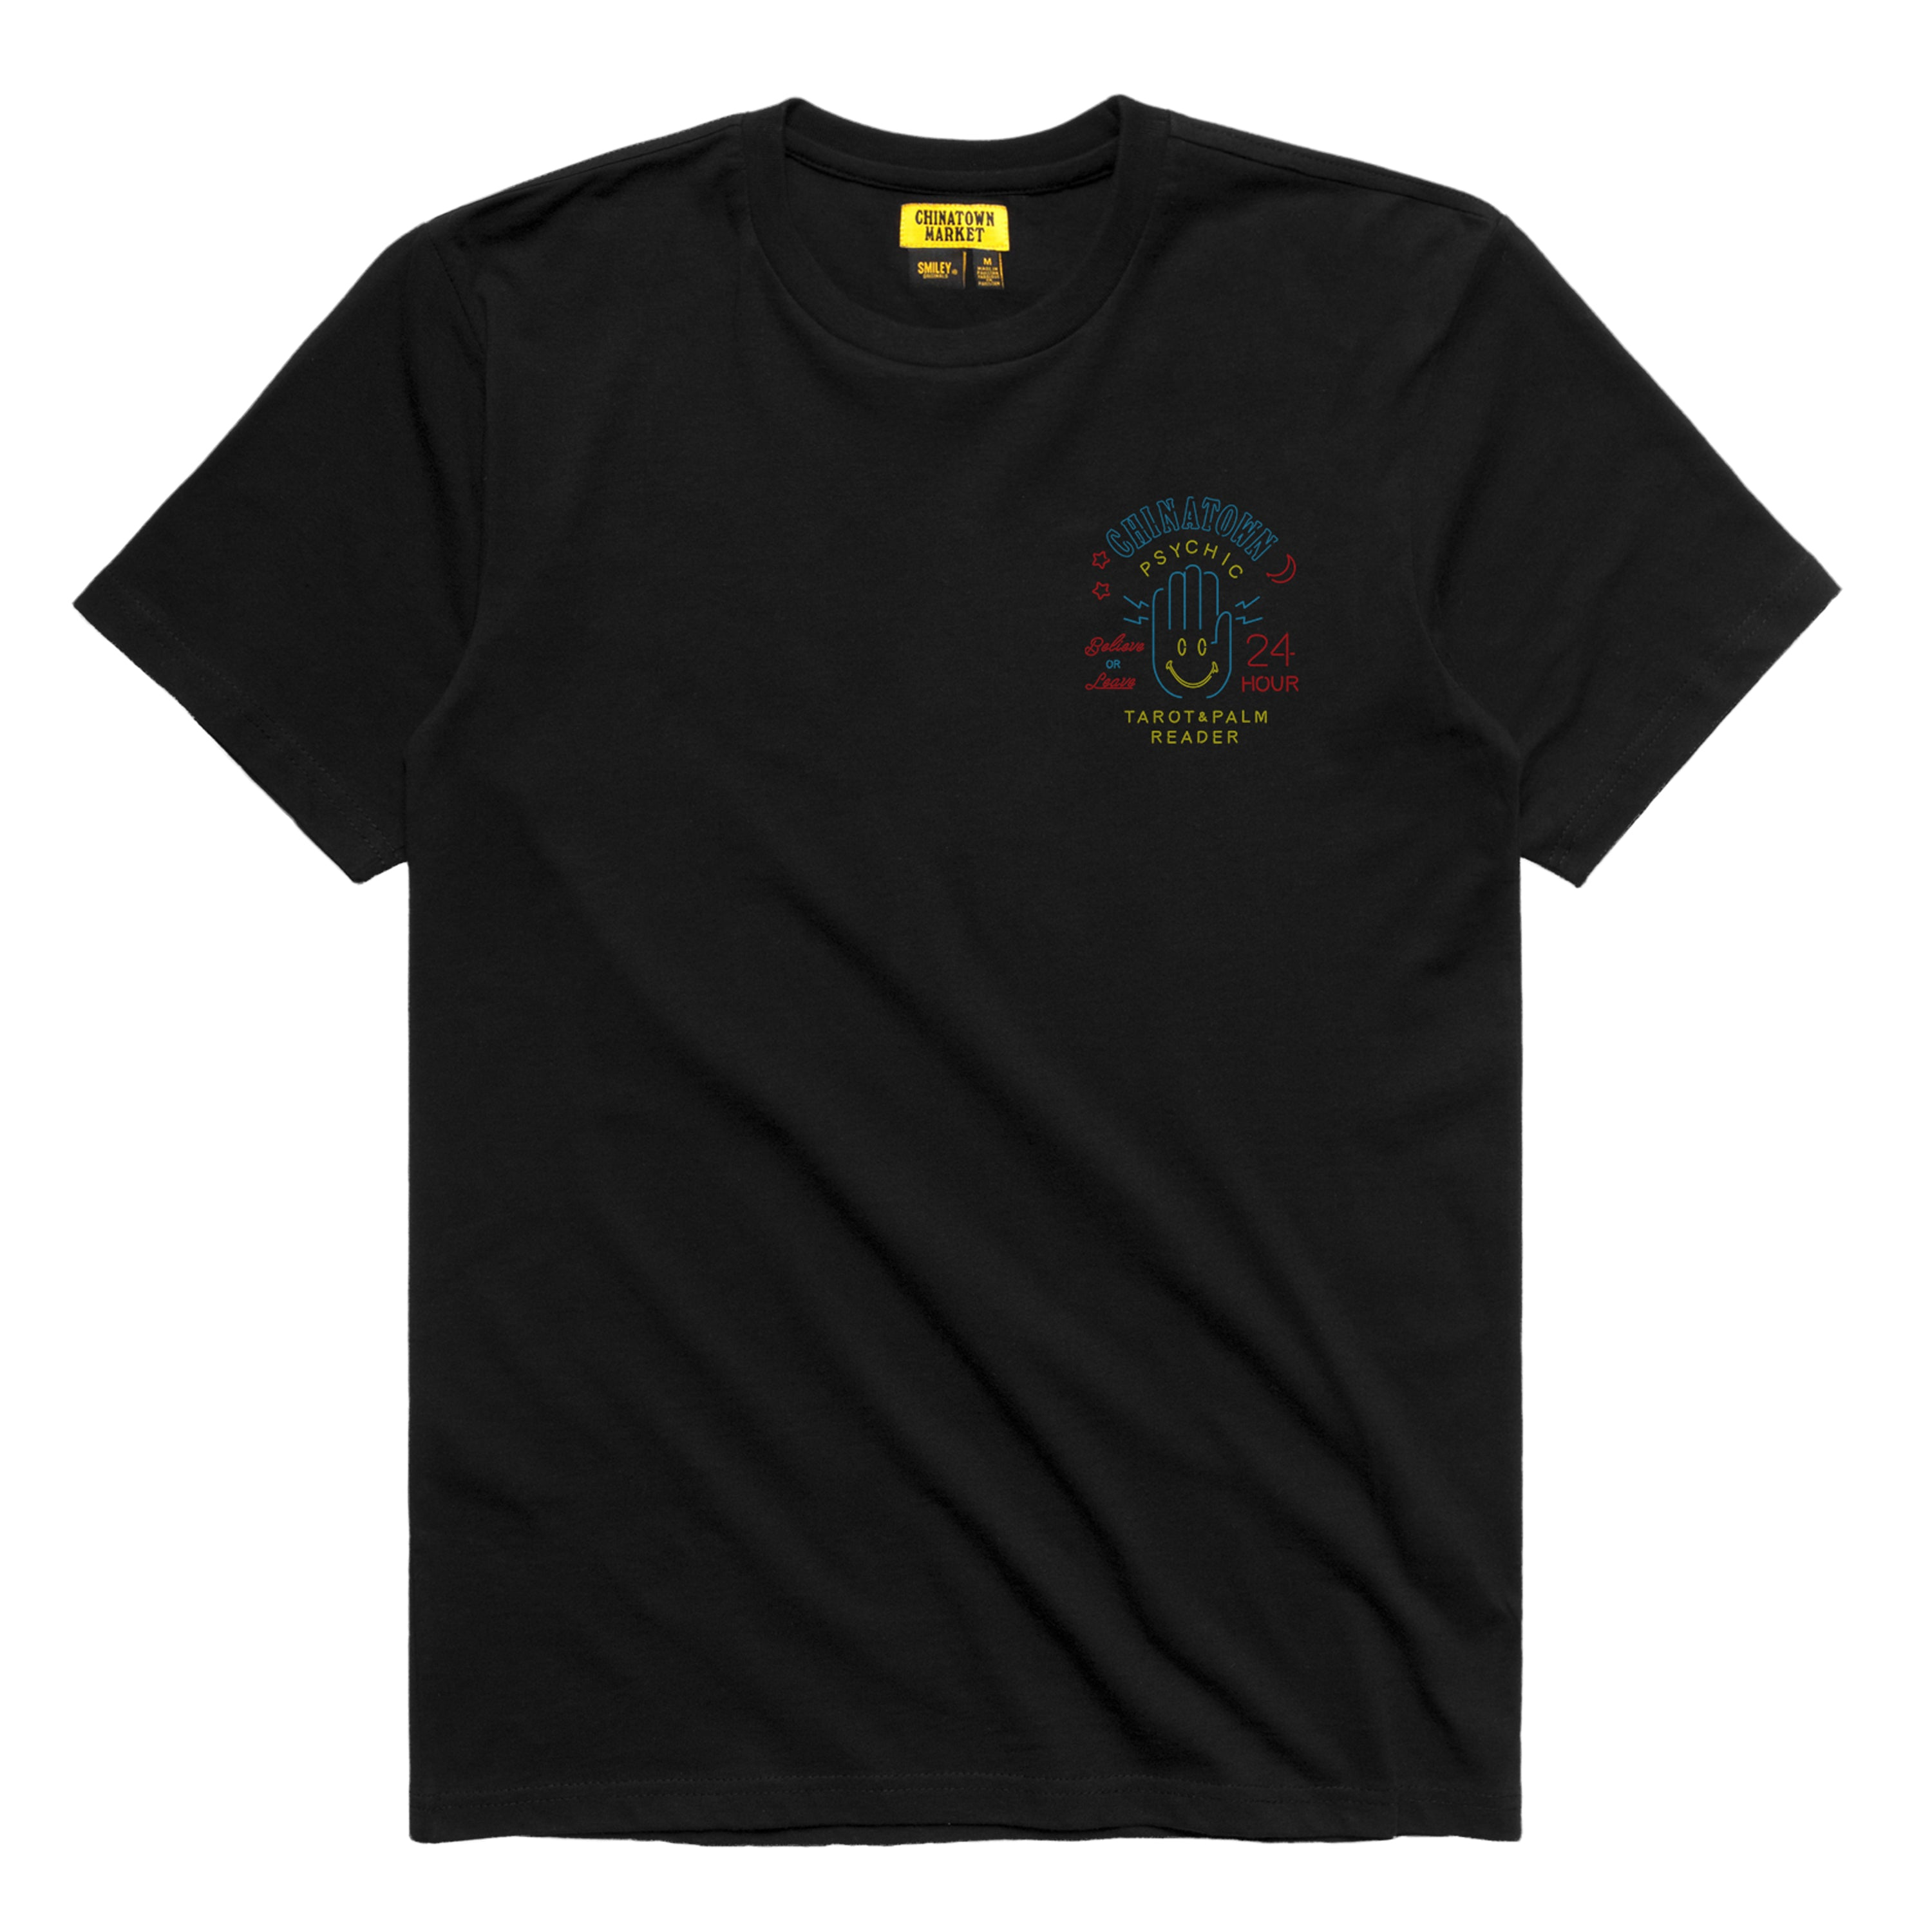 SMILEY PSYCHIC T-SHIRT (BLACK)